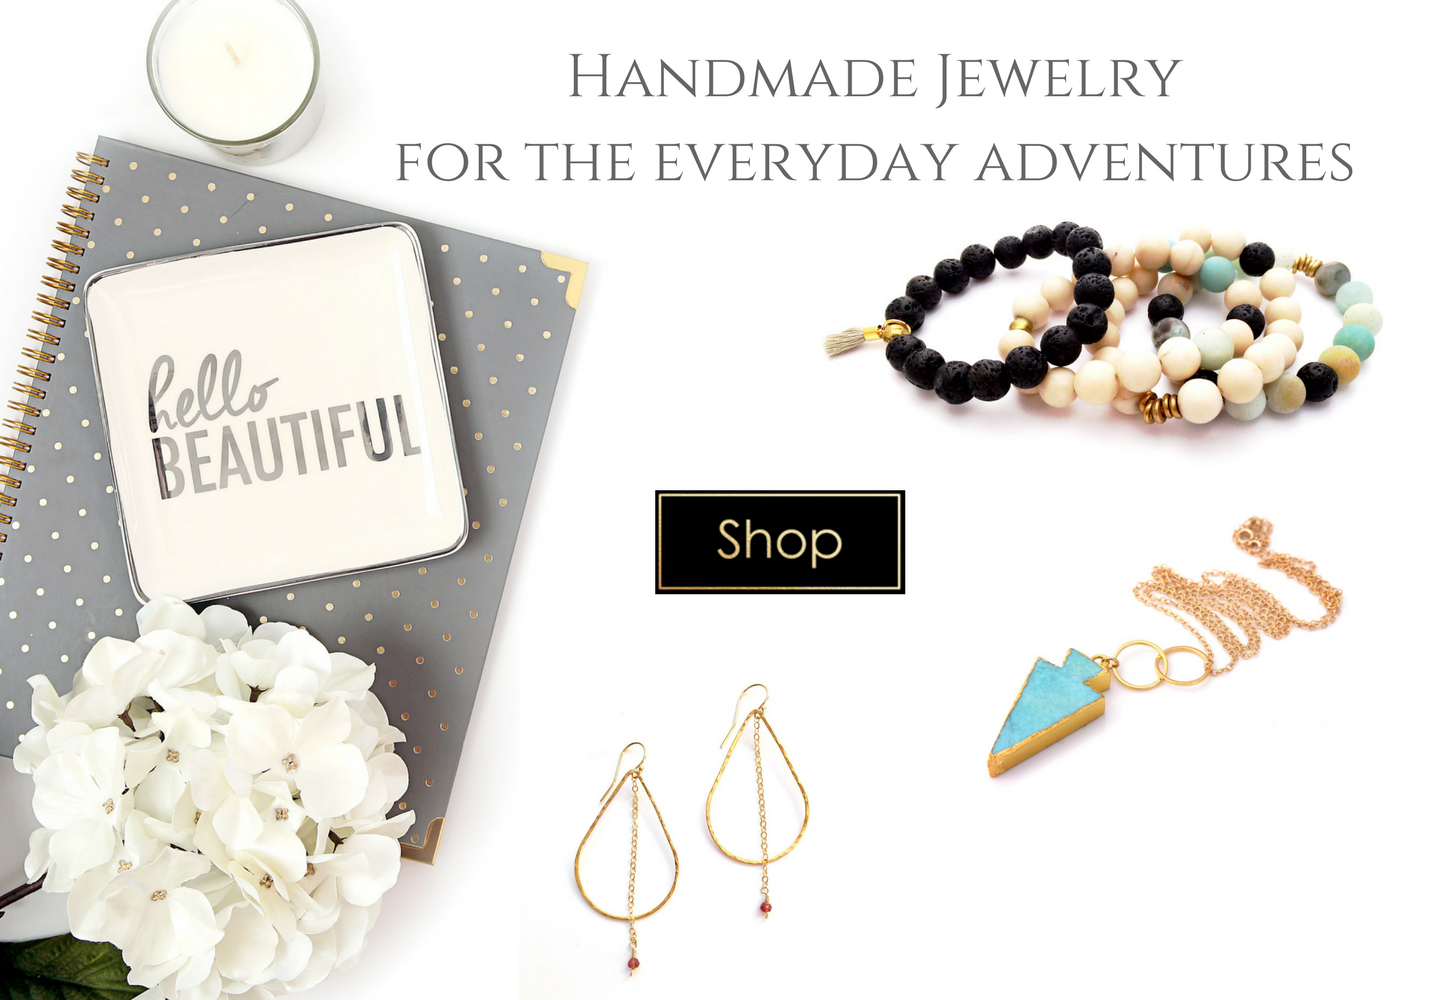 Handmade Jewelry for Everyday Wear by celebrity designer Reija Eden